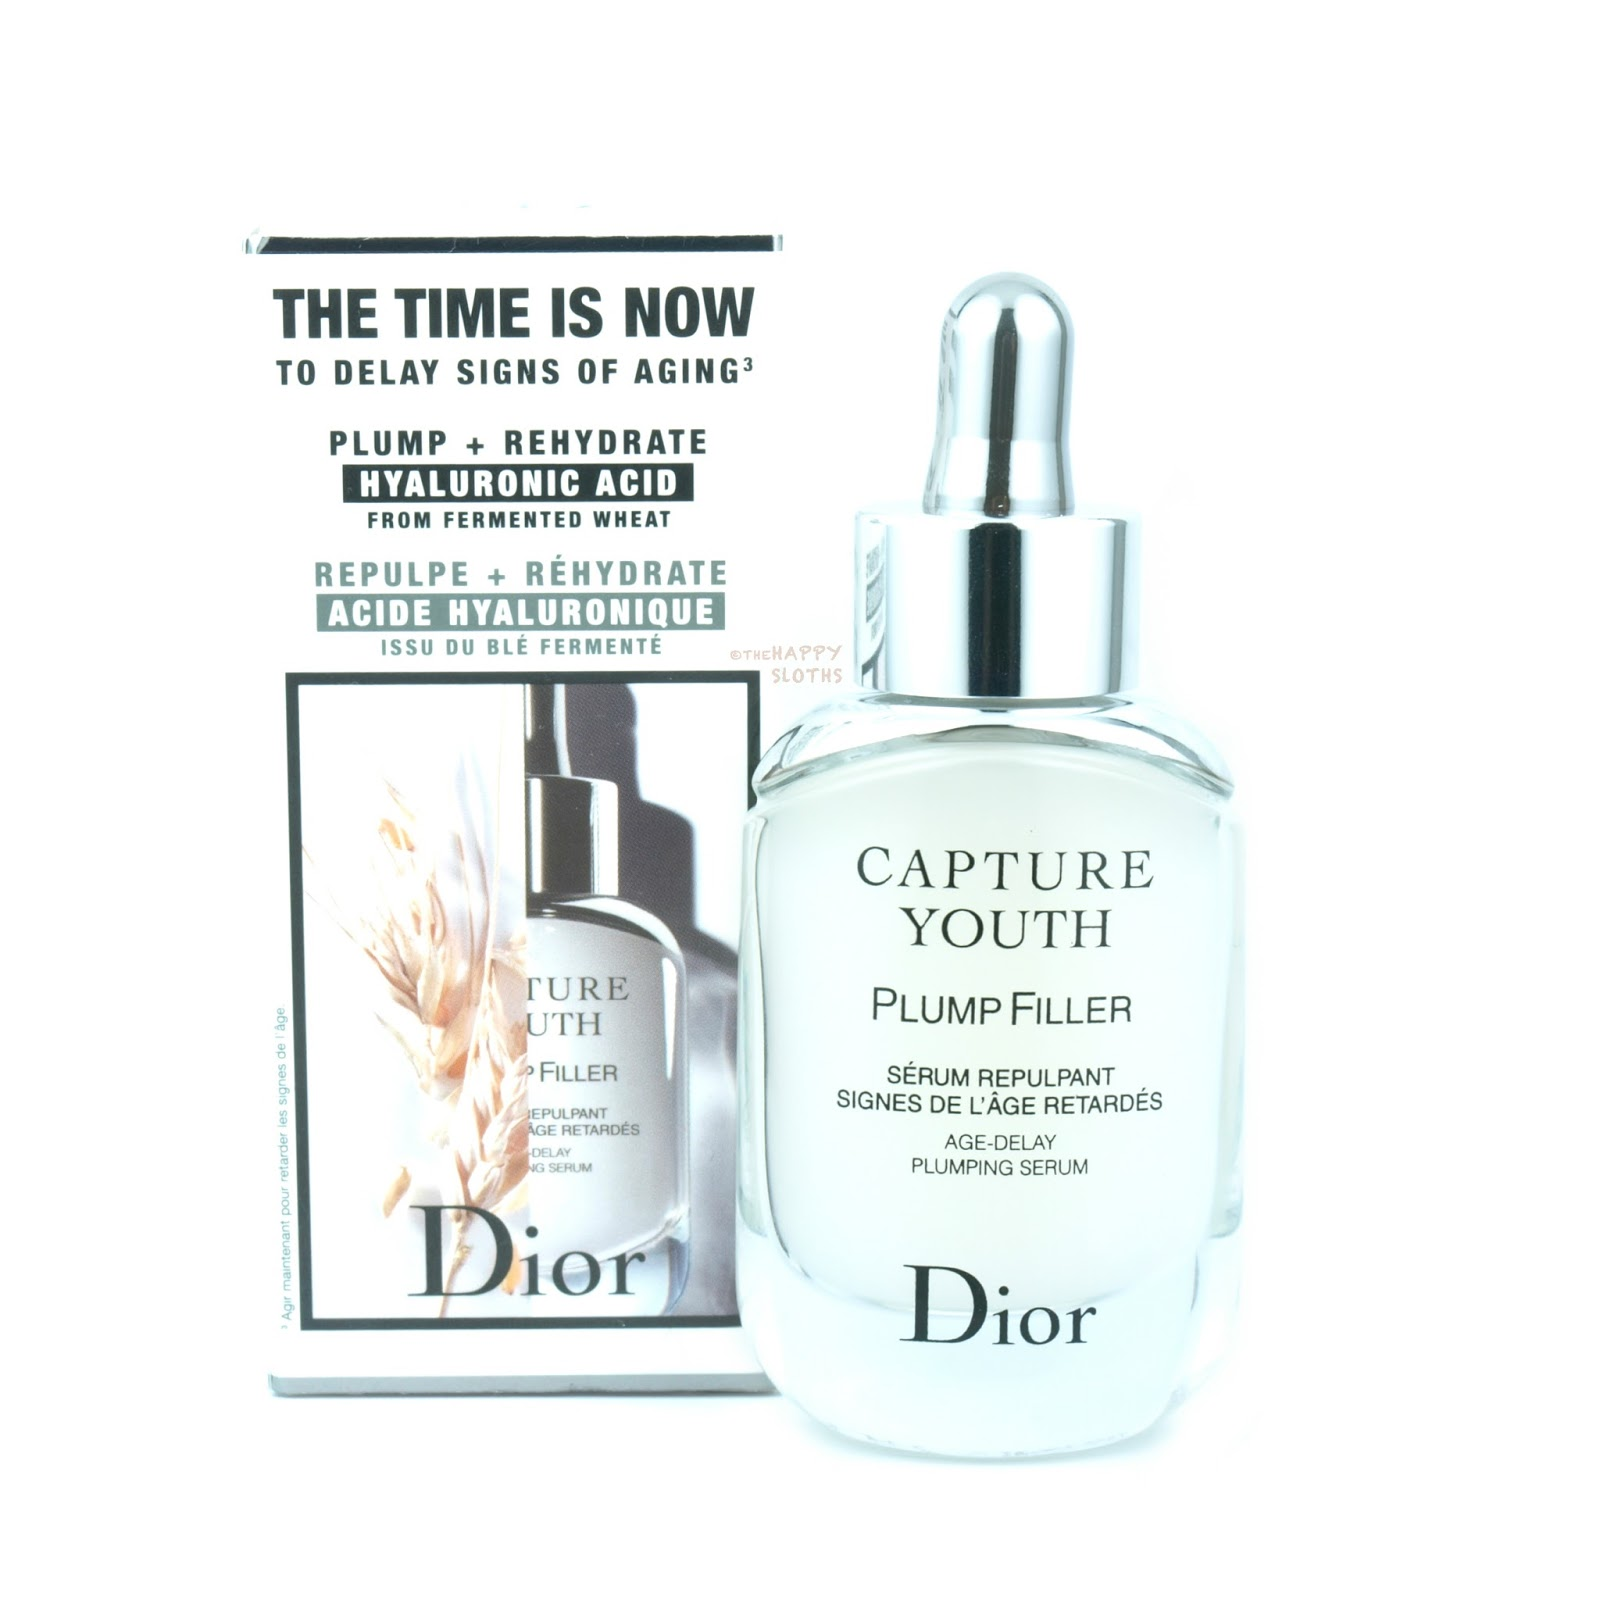 Dior Capture Youth Plump Filler Serum Review